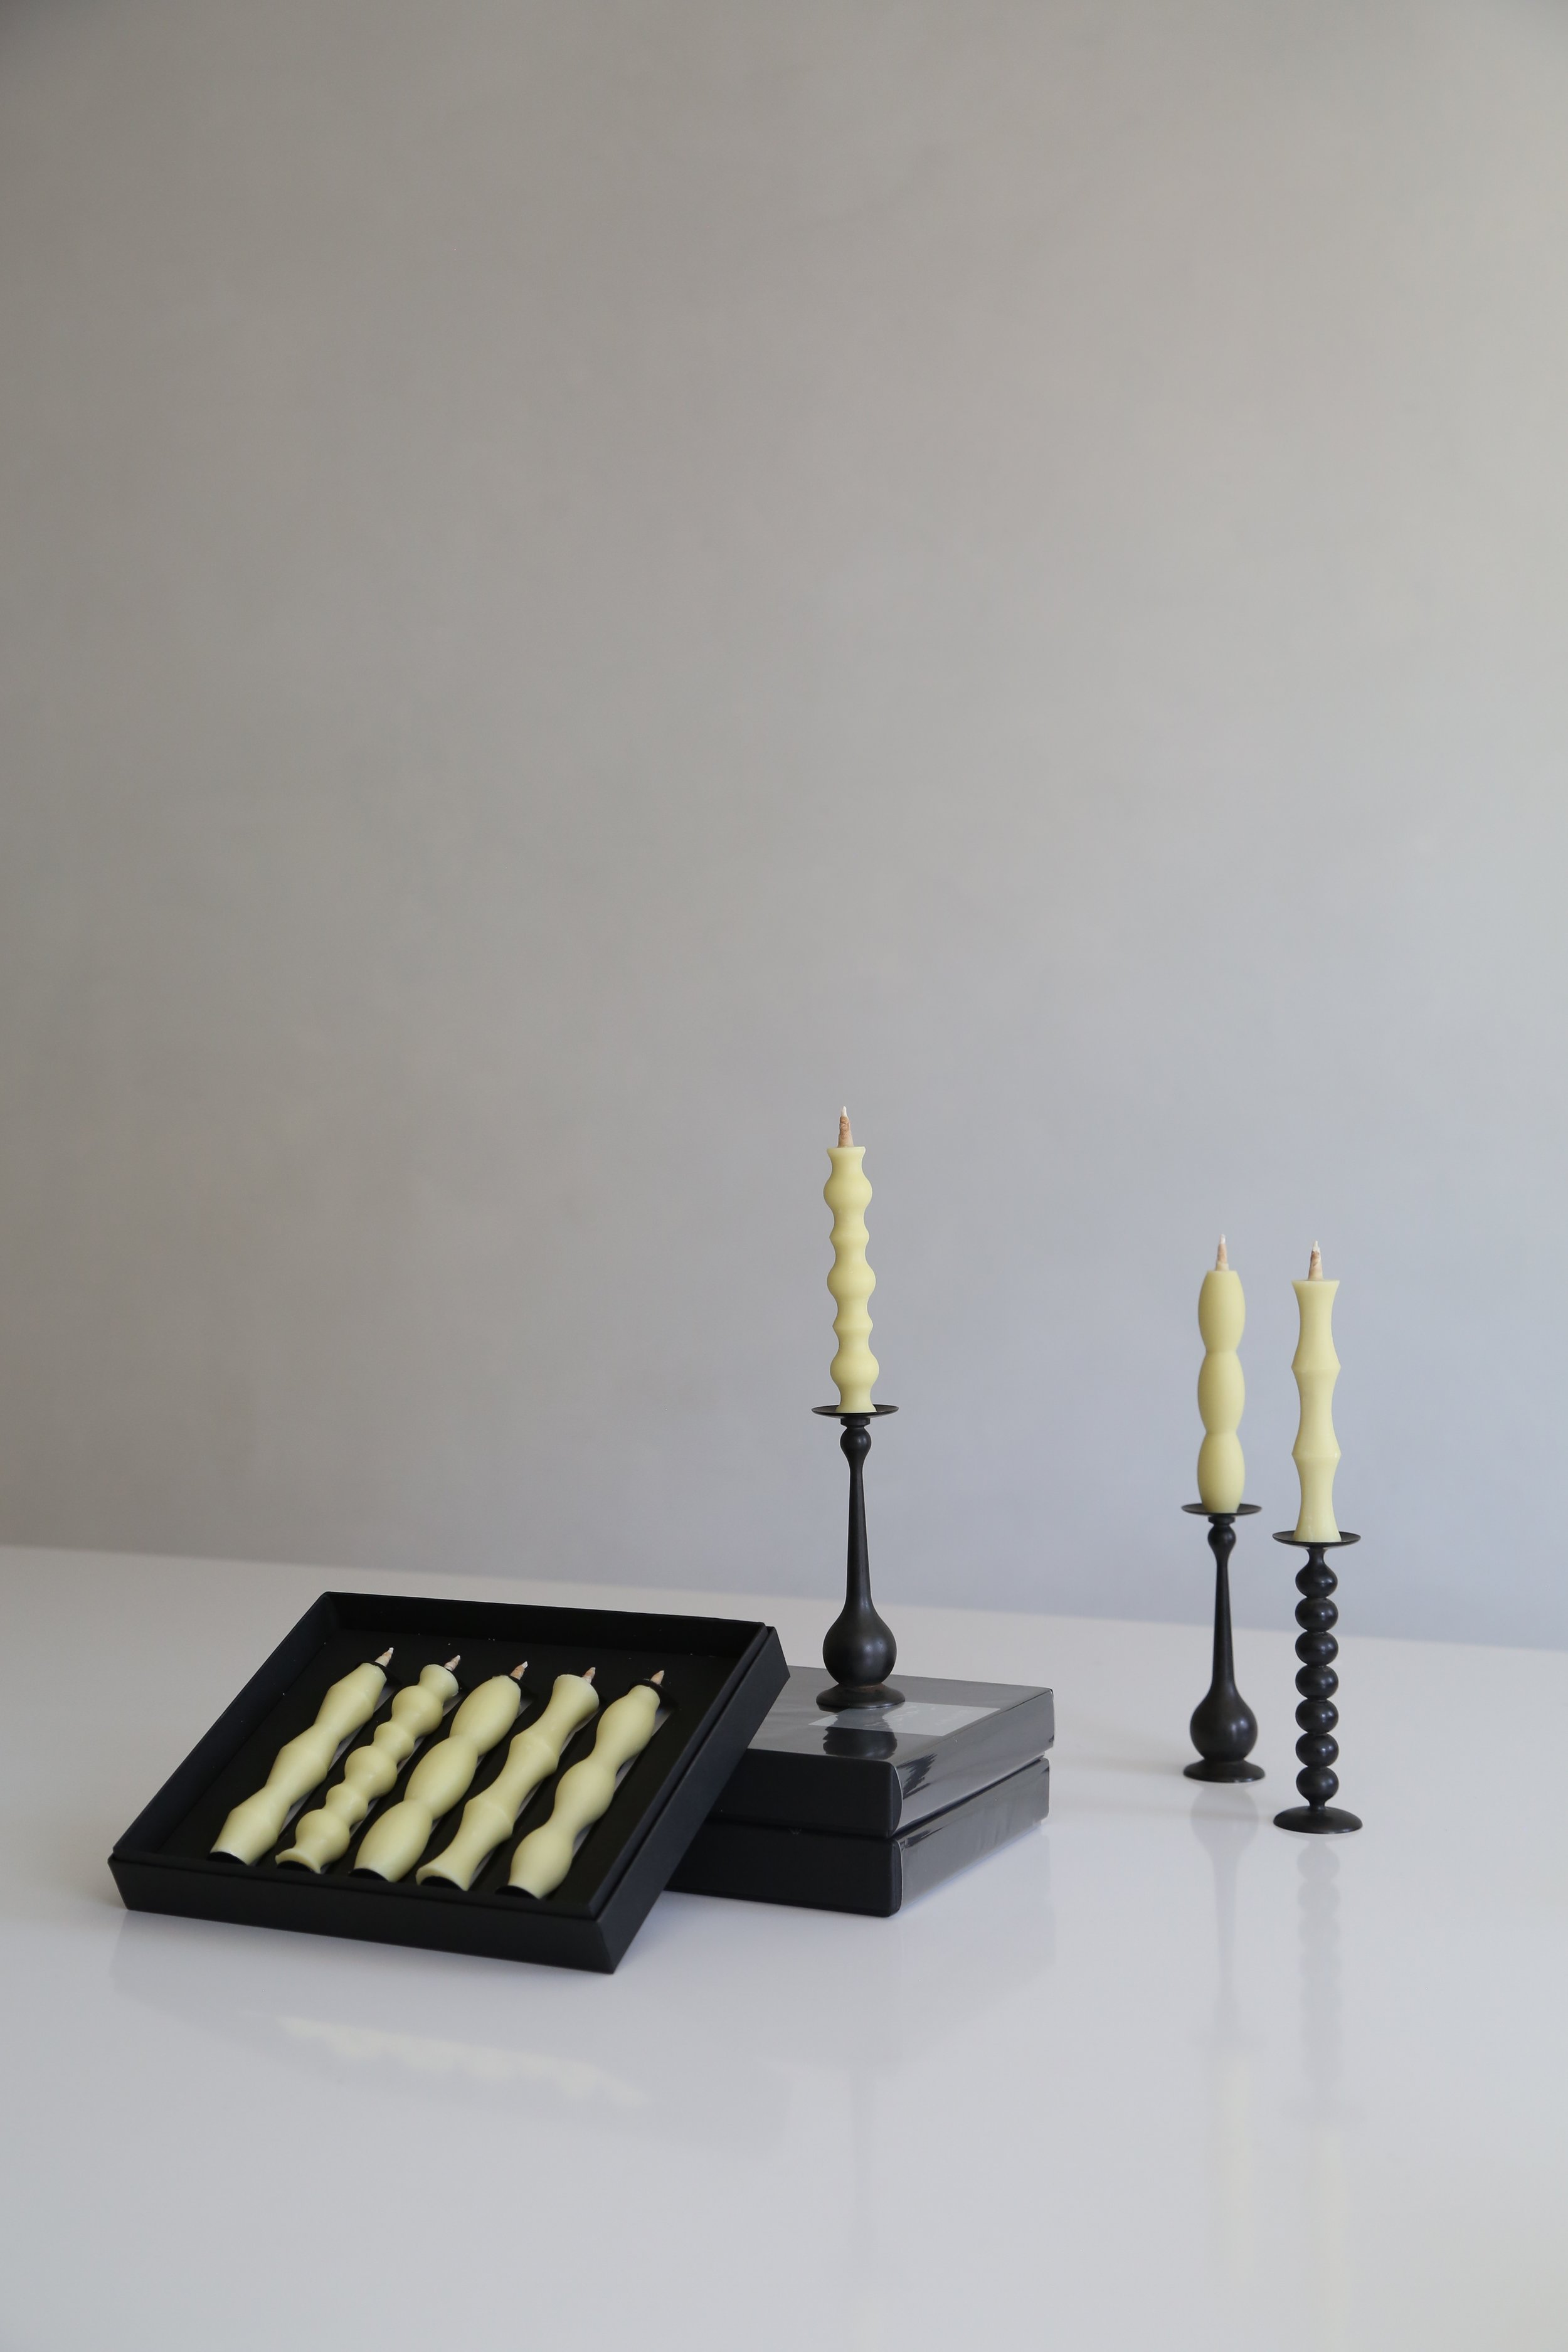 Japanese Candles-Candlestick holders.jpg